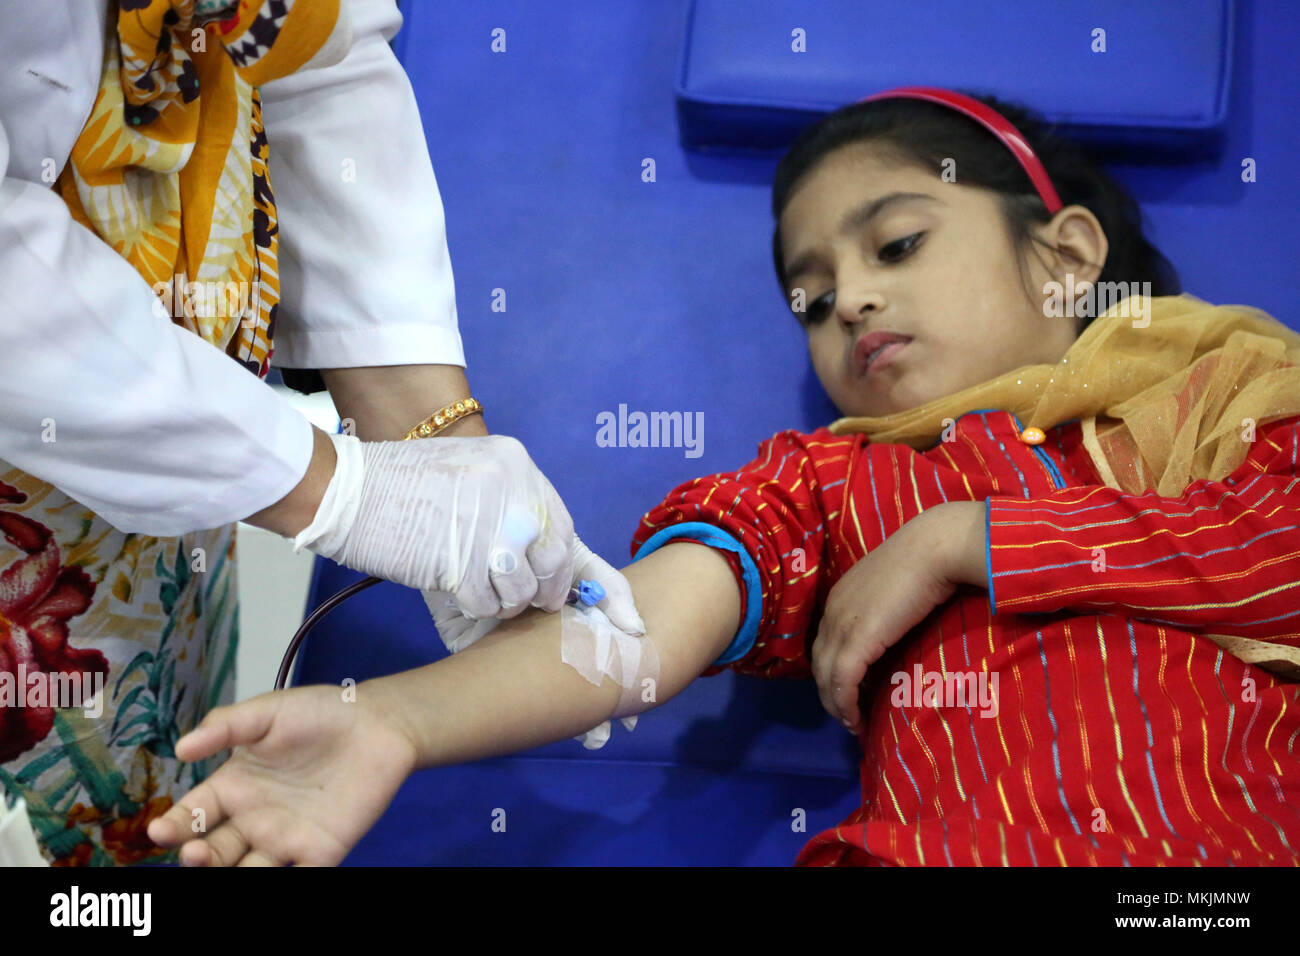 Islamabad, Pakistan. 8th May, 2018. Pakistani patient suffering from thalassemia receives blood at a medical center on the World Thalassemia Day in Islamabad, Pakistan, on May 8, 2018. Thalassemia, also called Mediterranean anemia, is an inherited and non-infectious blood disorder. Credit: Ahmad Kamal/Xinhua/Alamy Live News - Stock Image